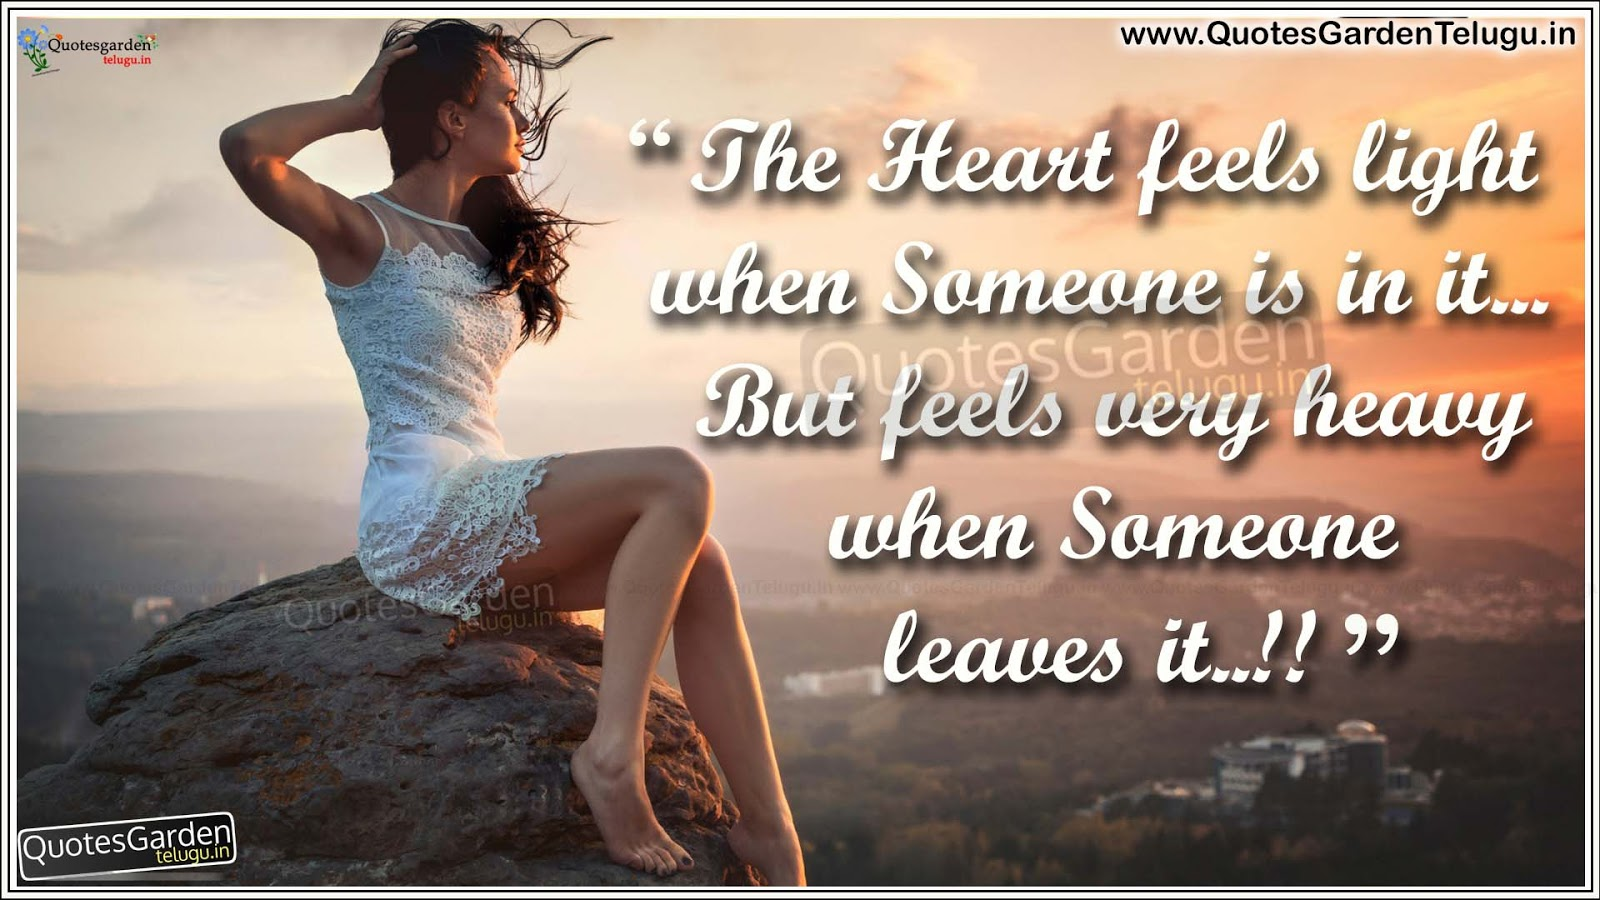 Hd wallpaper quotes on love - Heart Touching Love Quotes Hd Love Wallpapers